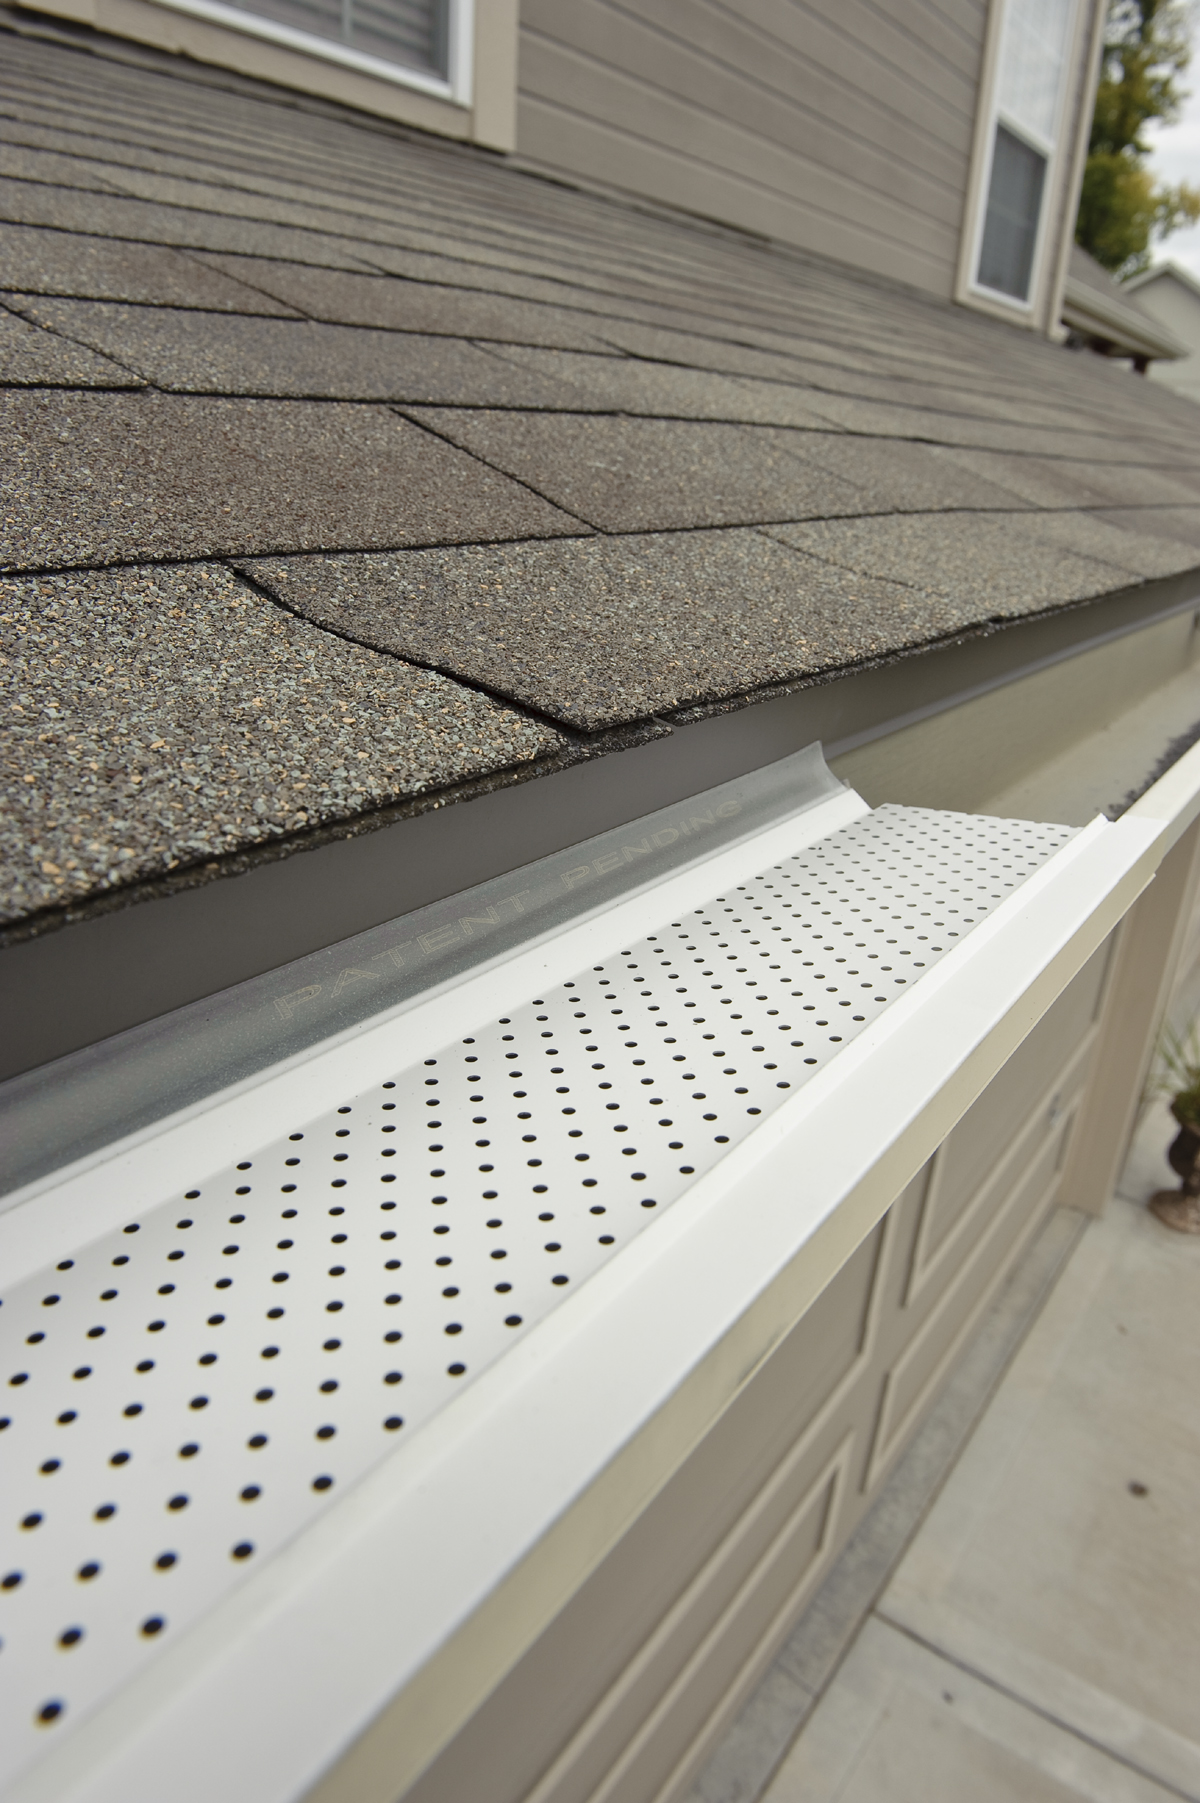 New Durabuilt Gutter Protection By Ply Gem Offers